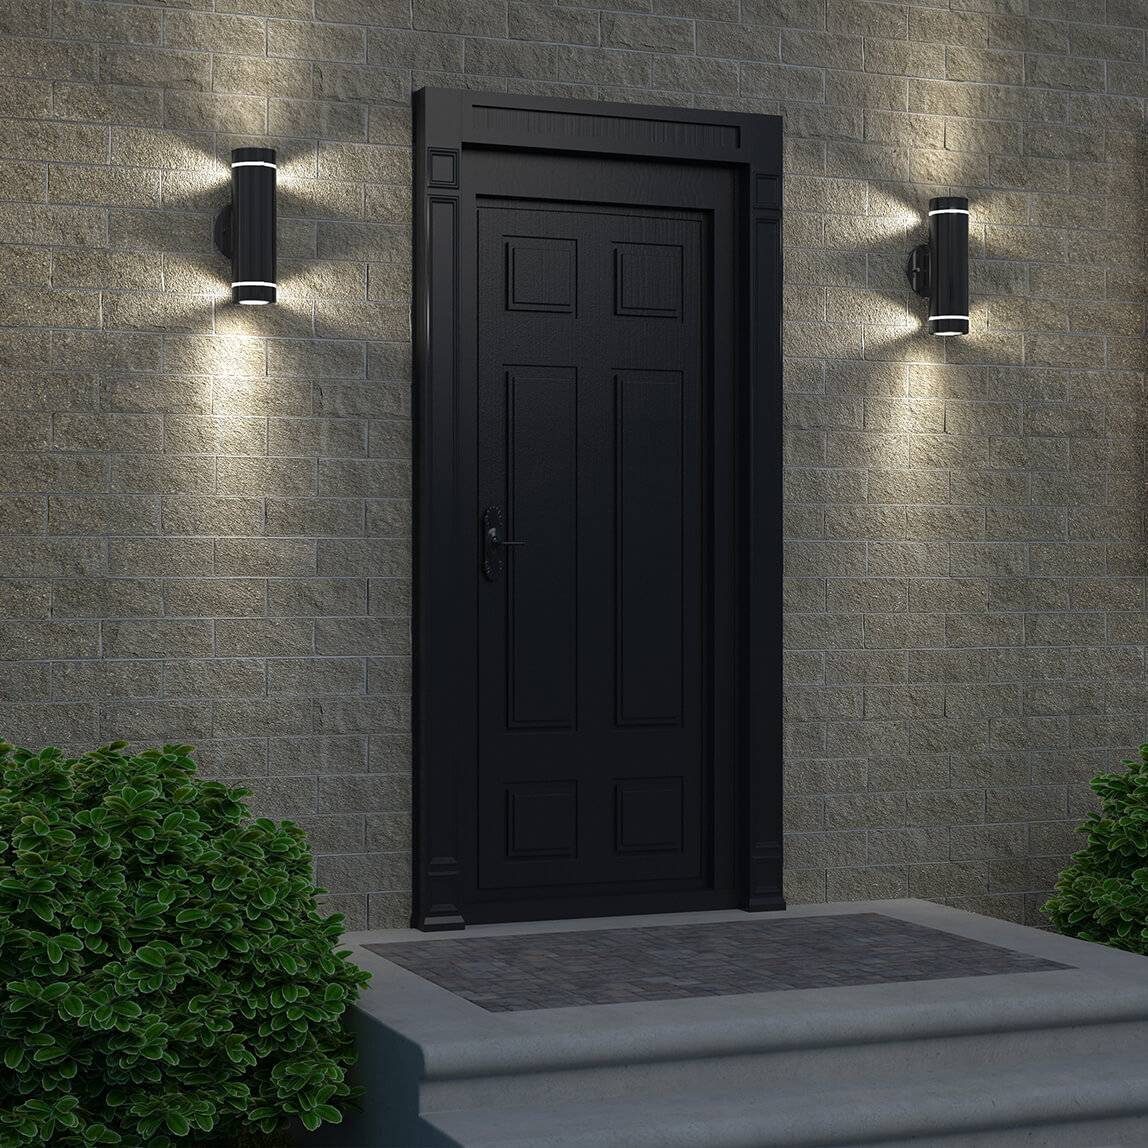 C7 Outdoor Light Black